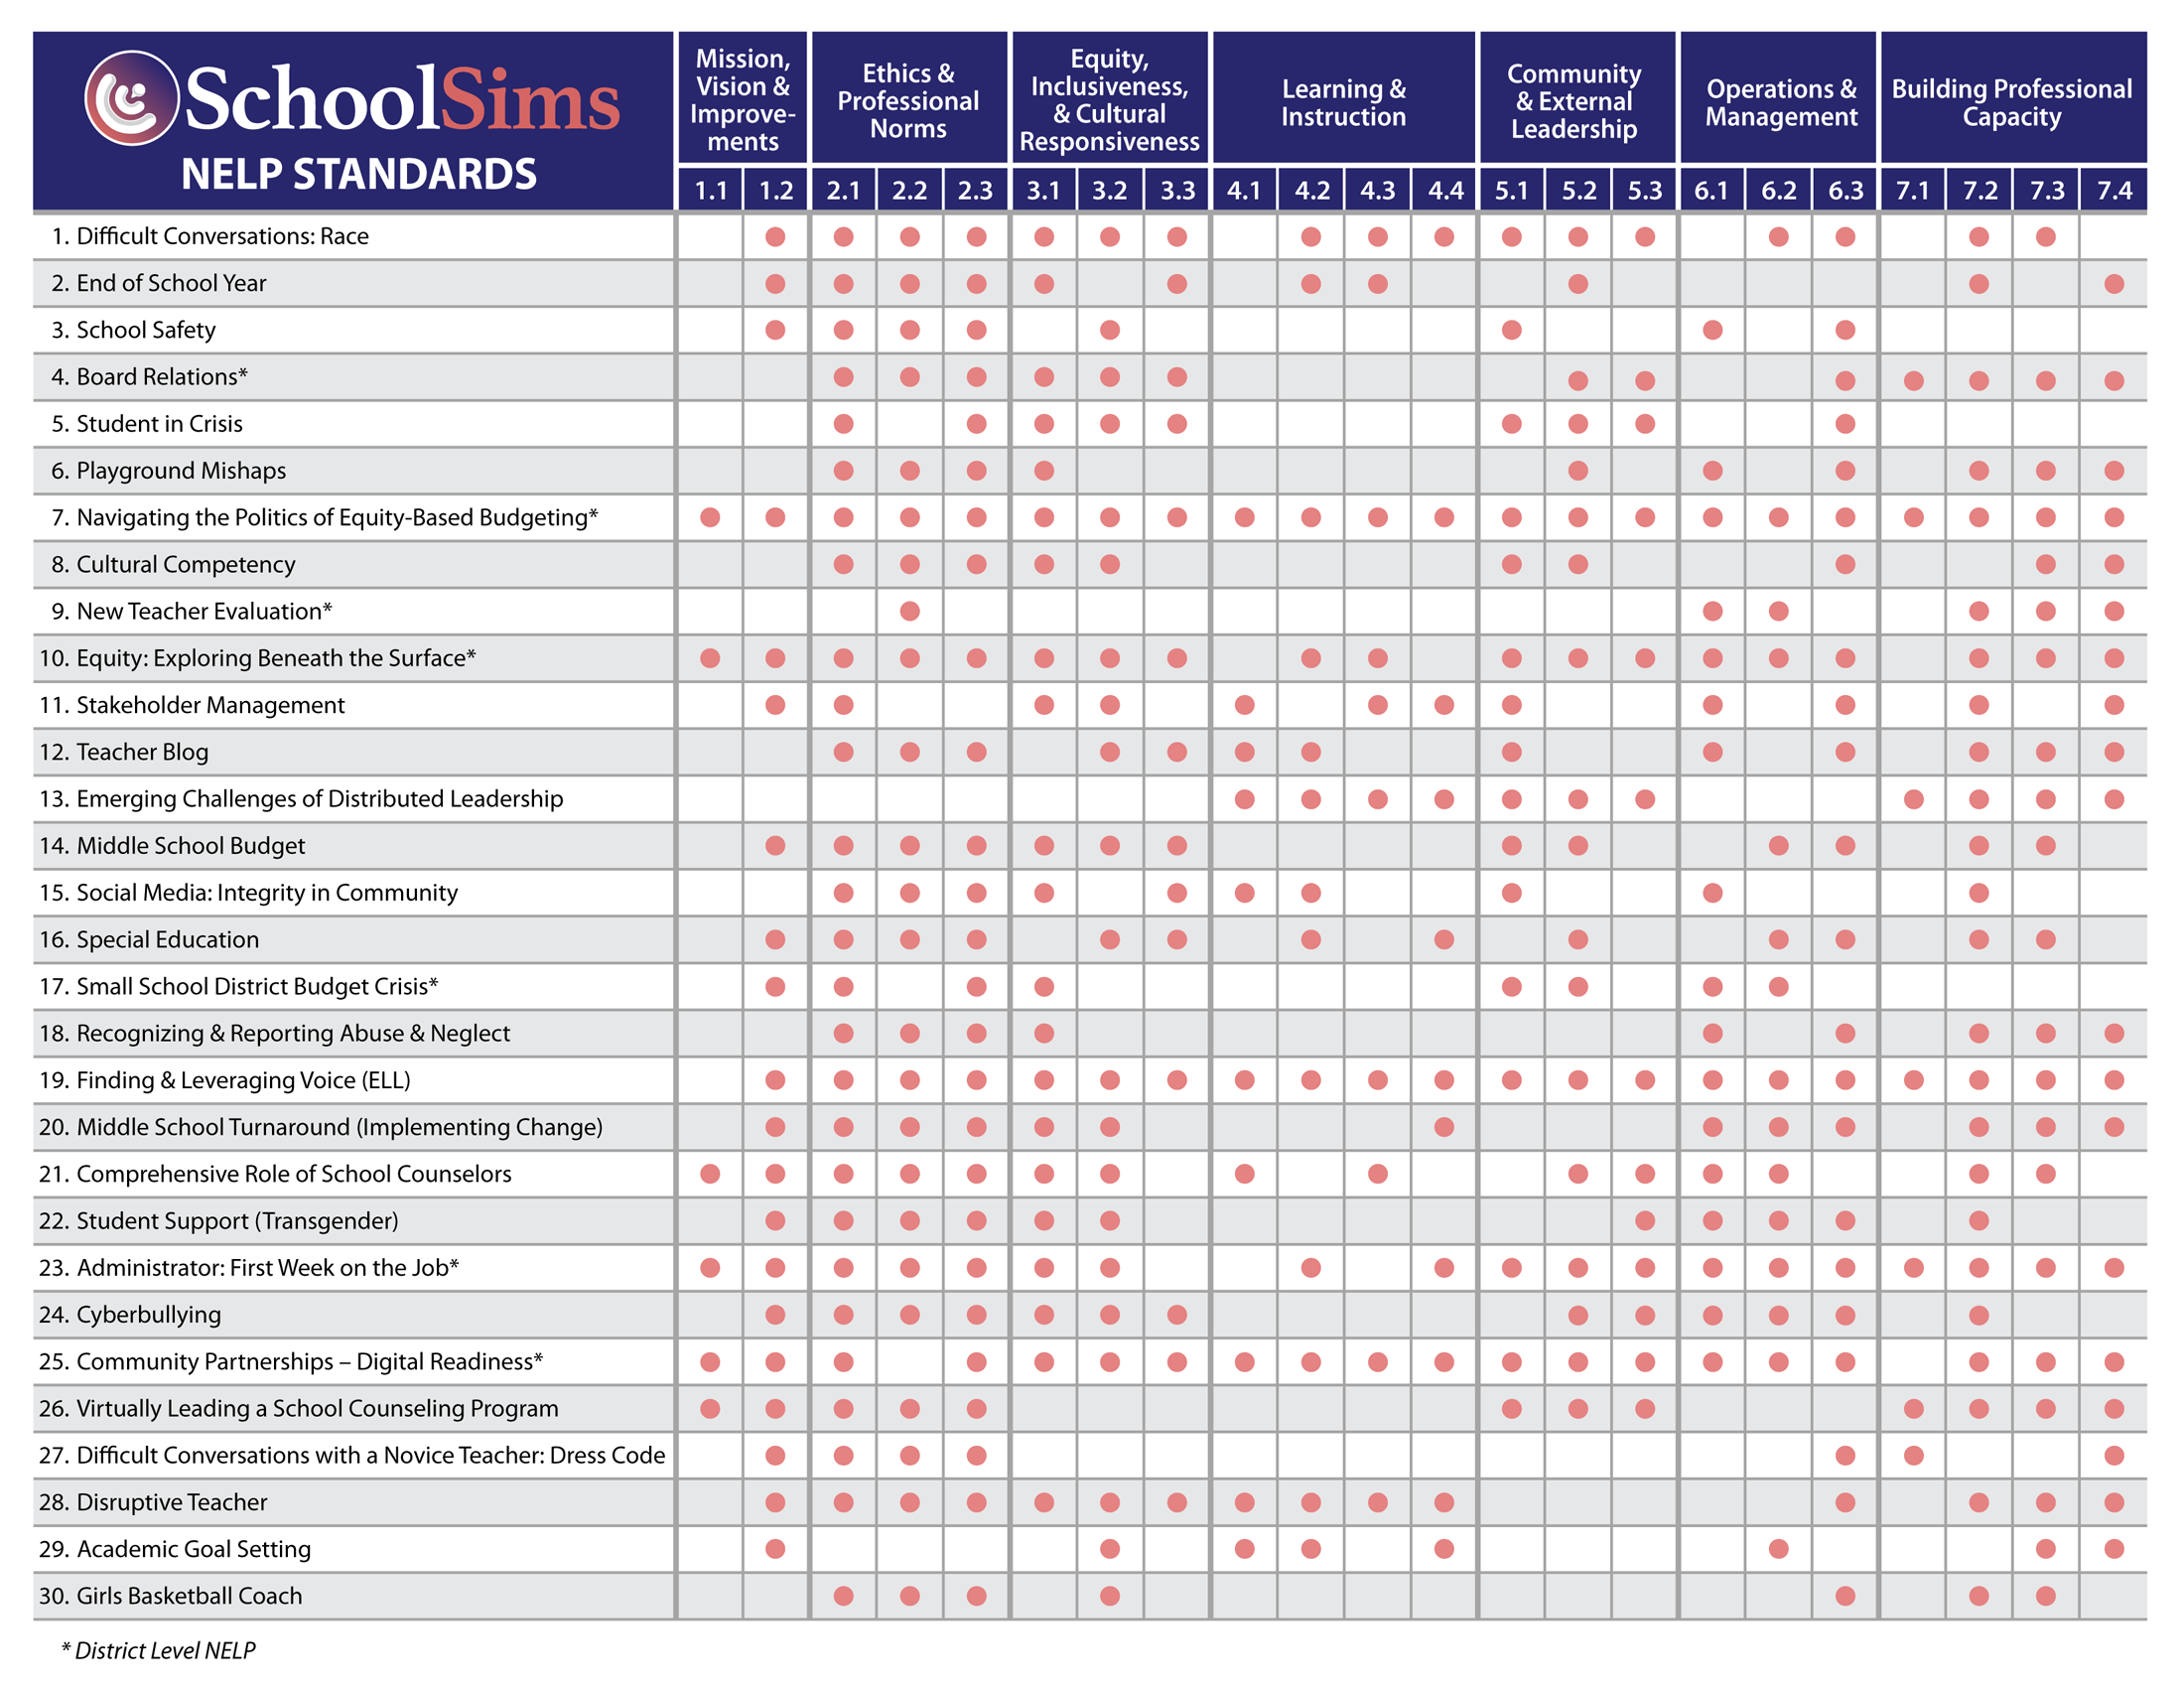 SchoolSims Align with NELP Standards